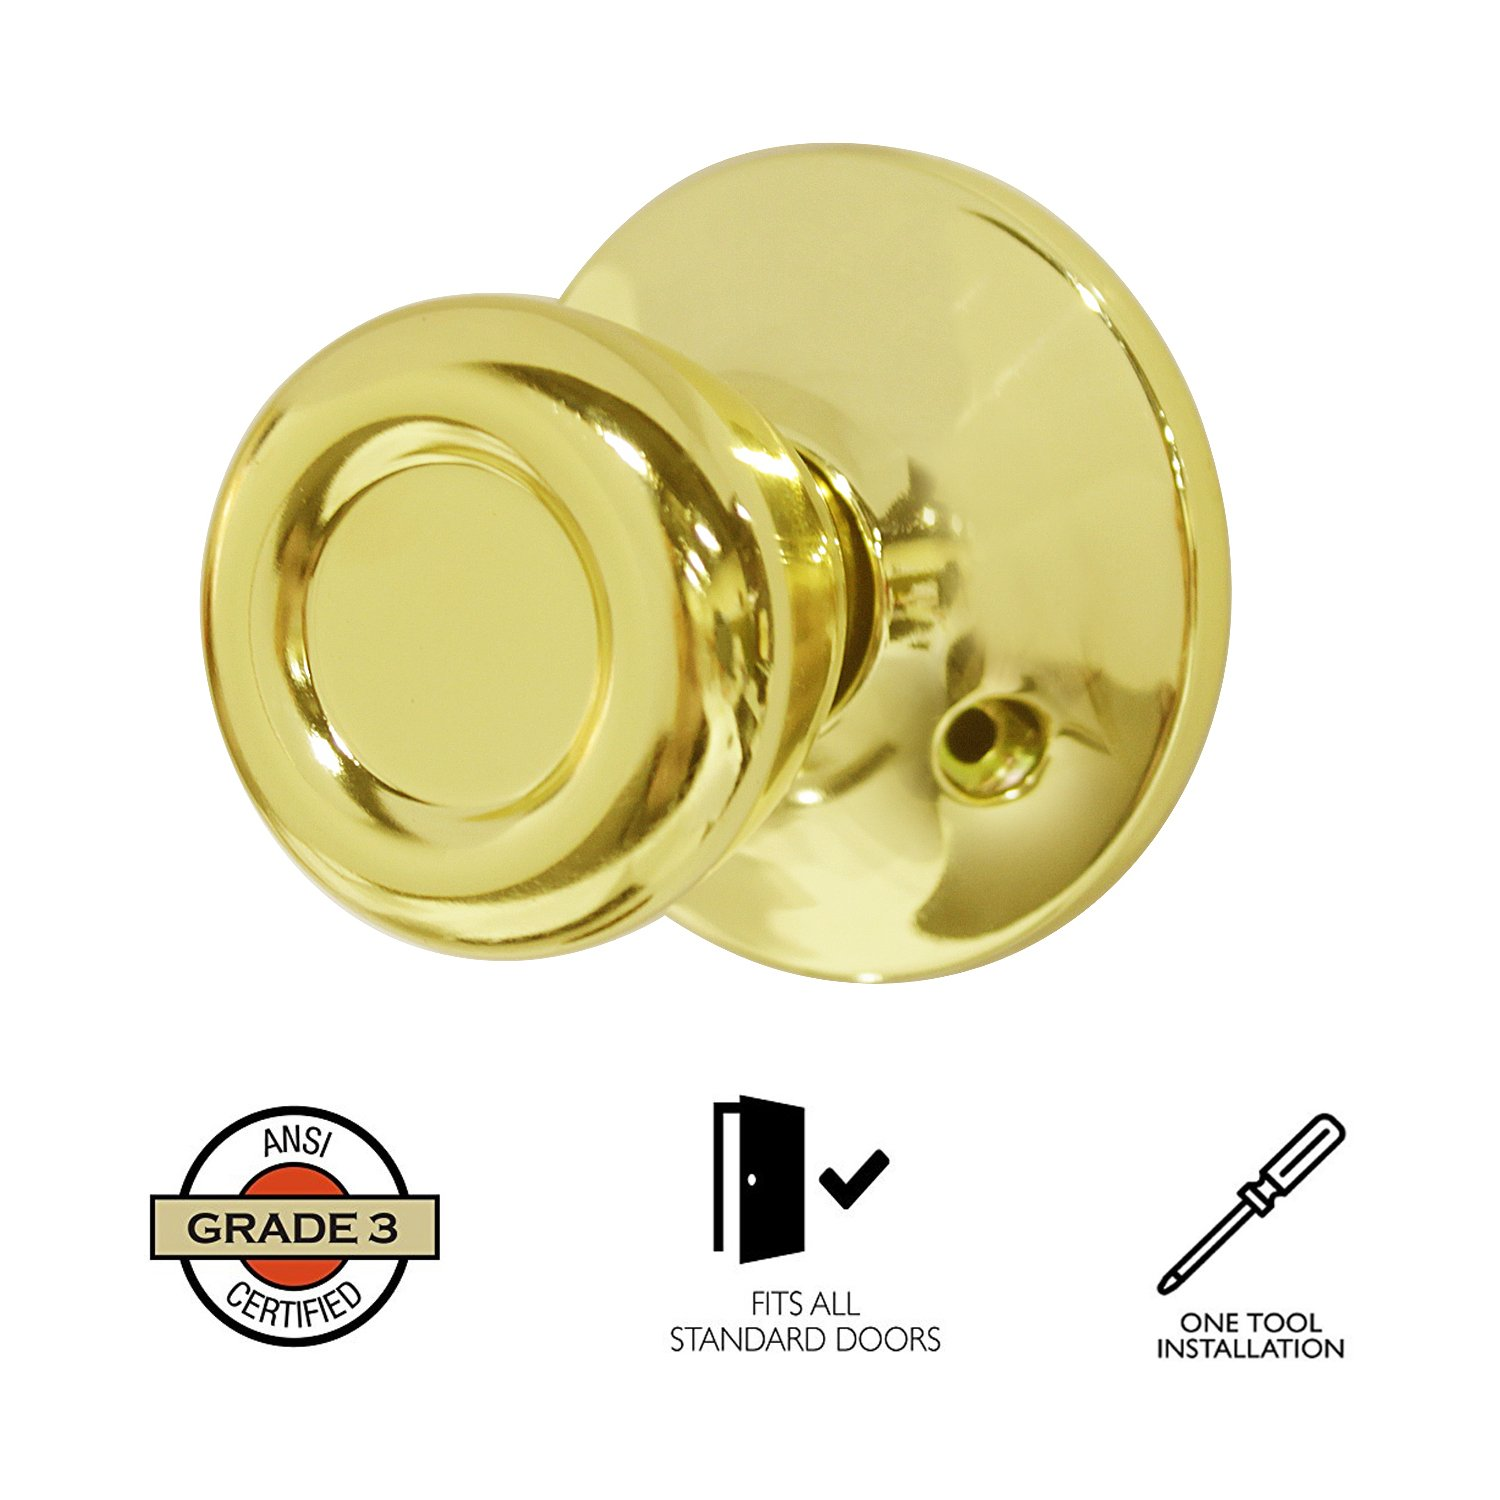 Dummy Interior Door Knob Set Tulip Shape Handles Decorative Inactive Trim Knob for Right or Left Handed Door , Polished Brass by home improvement direct (Image #2)